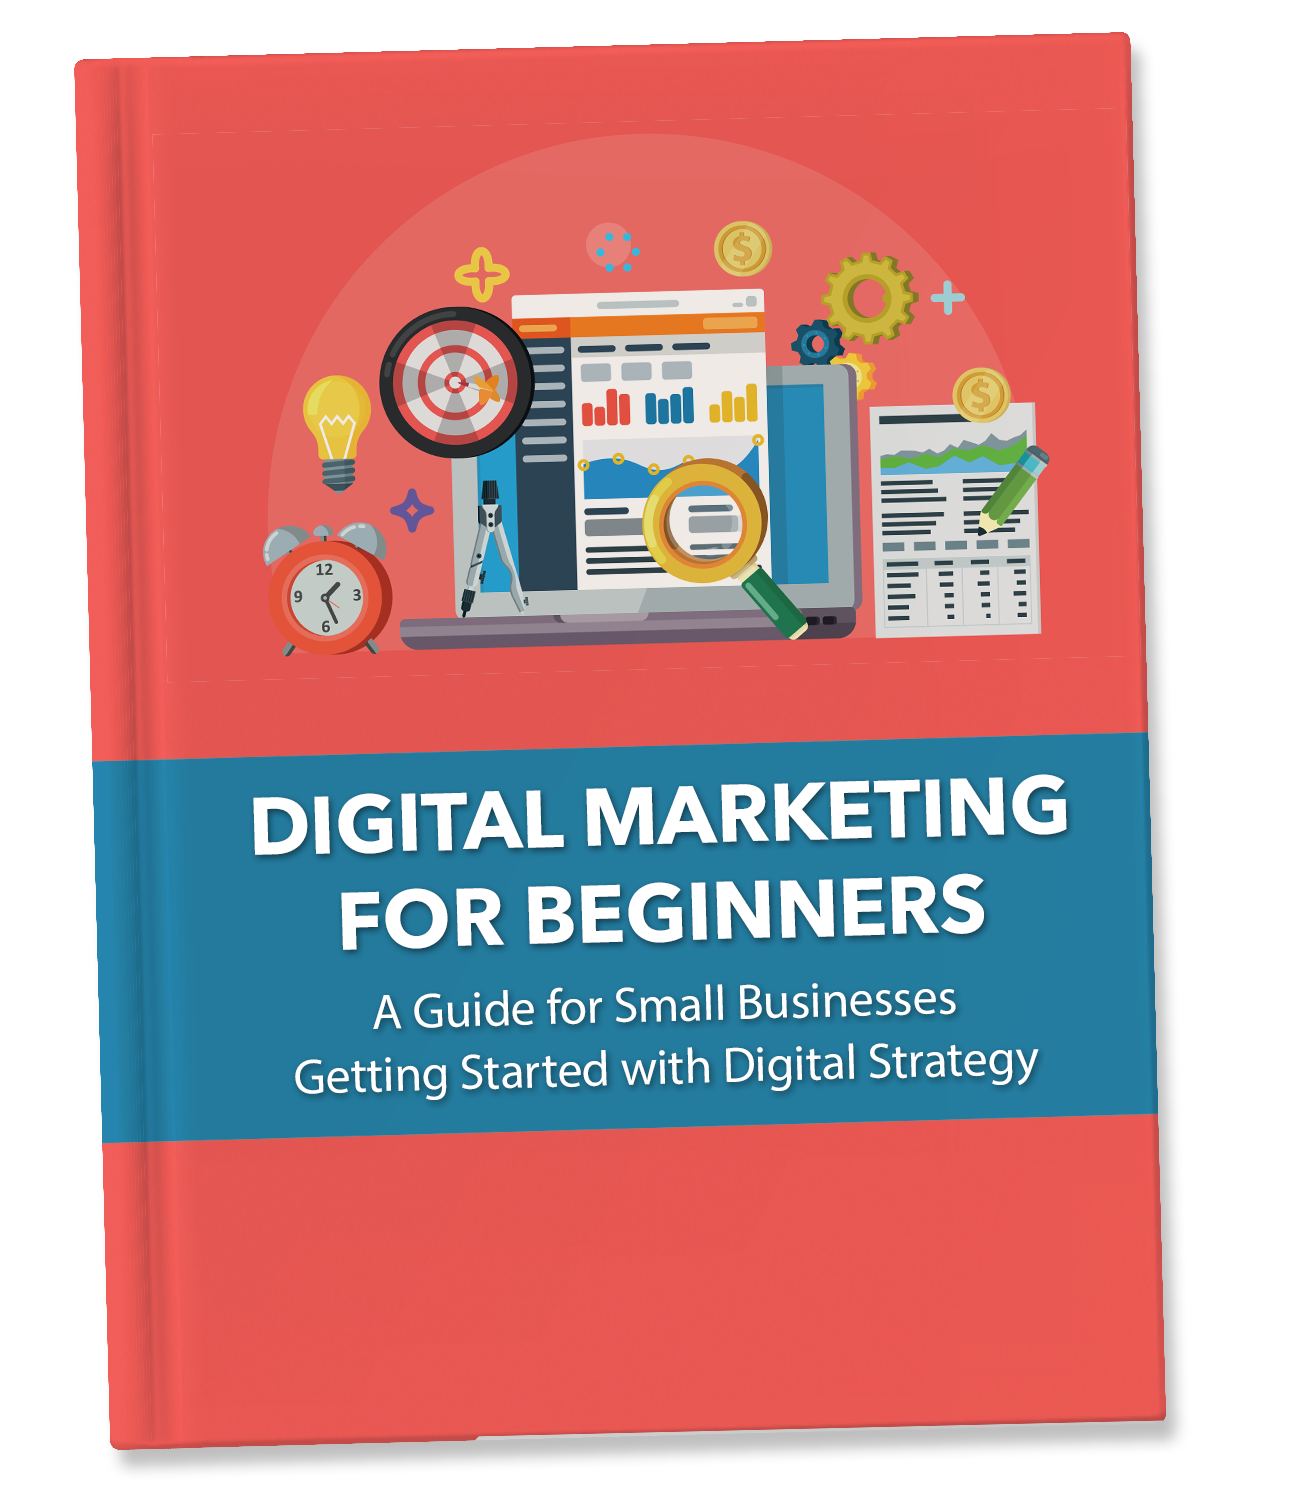 patra-digital-mkt-beginners-book-1300x1500.png